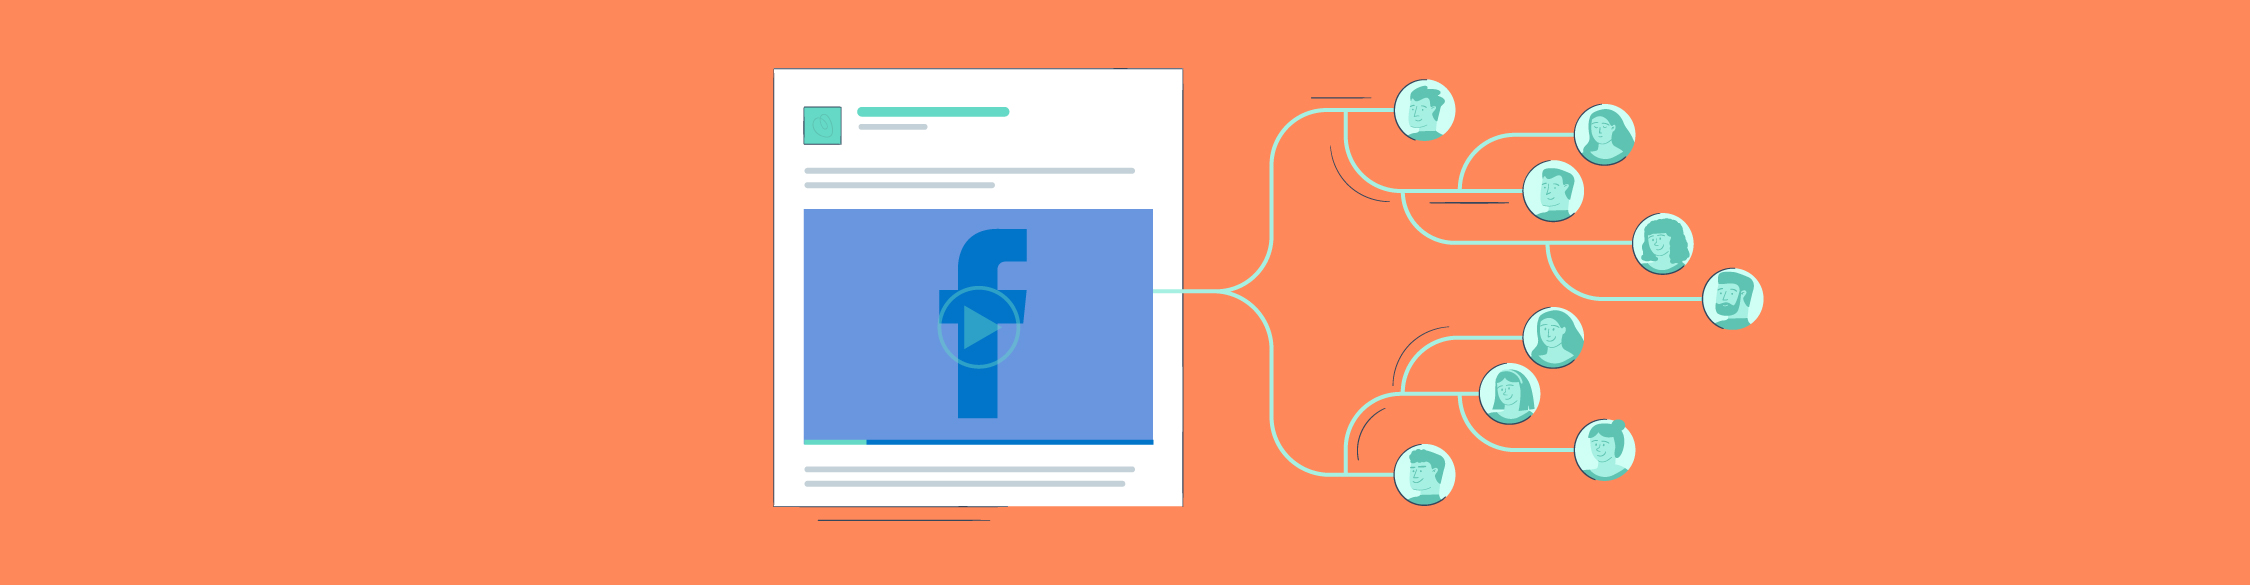 How to Create a Compelling Facebook Video Ad Funnel in 2020